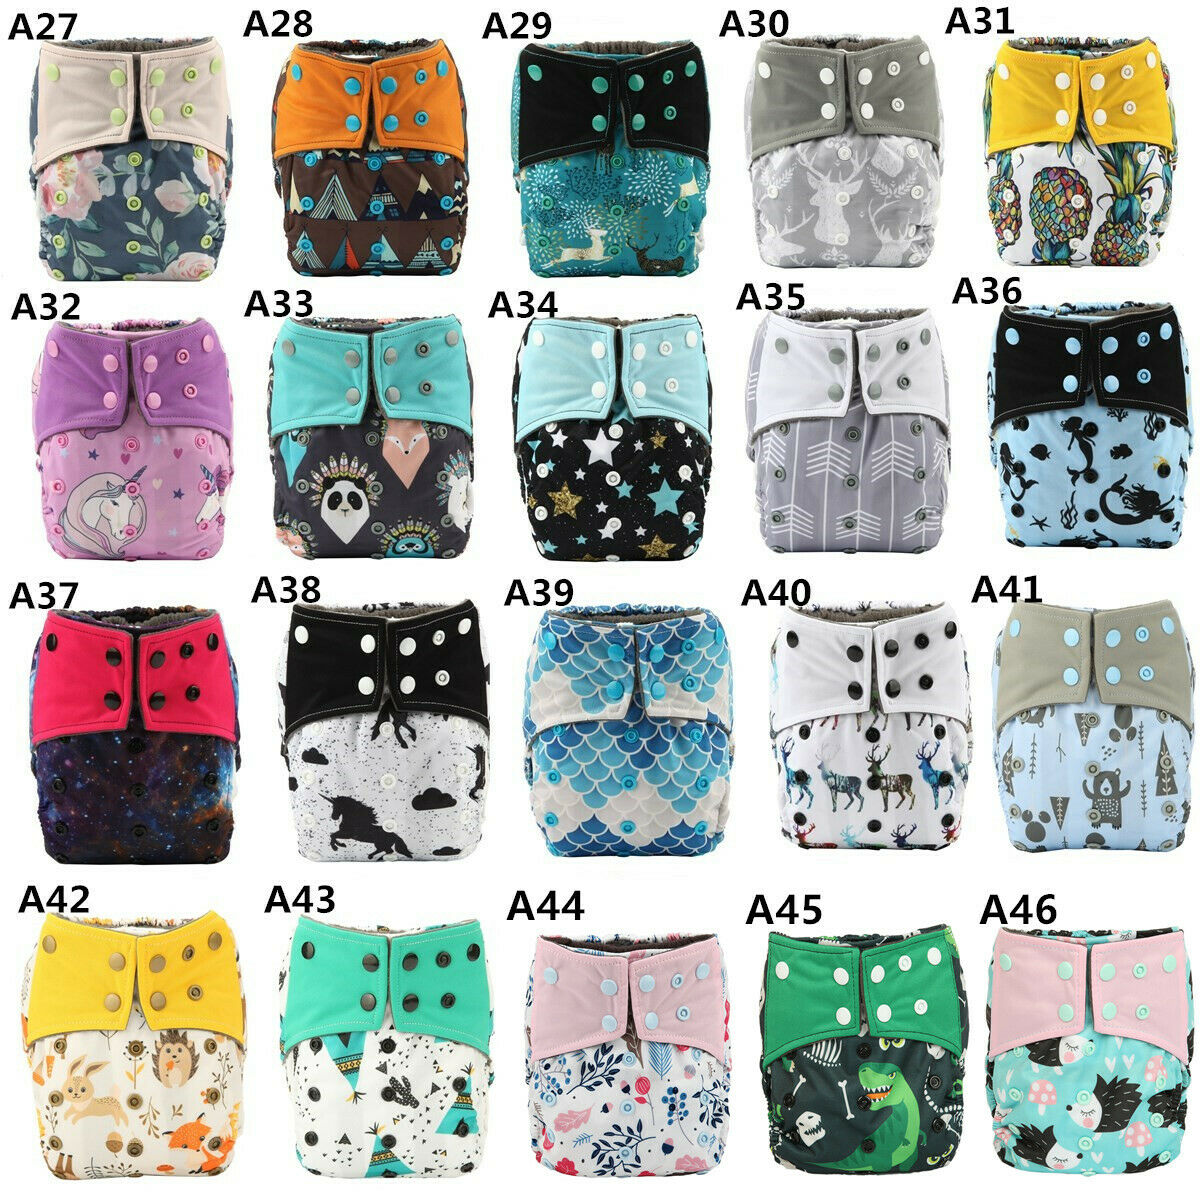 AIO Reusable Washable Cloth Diaper Nappy Charcoal Bamboo Overnight A-31